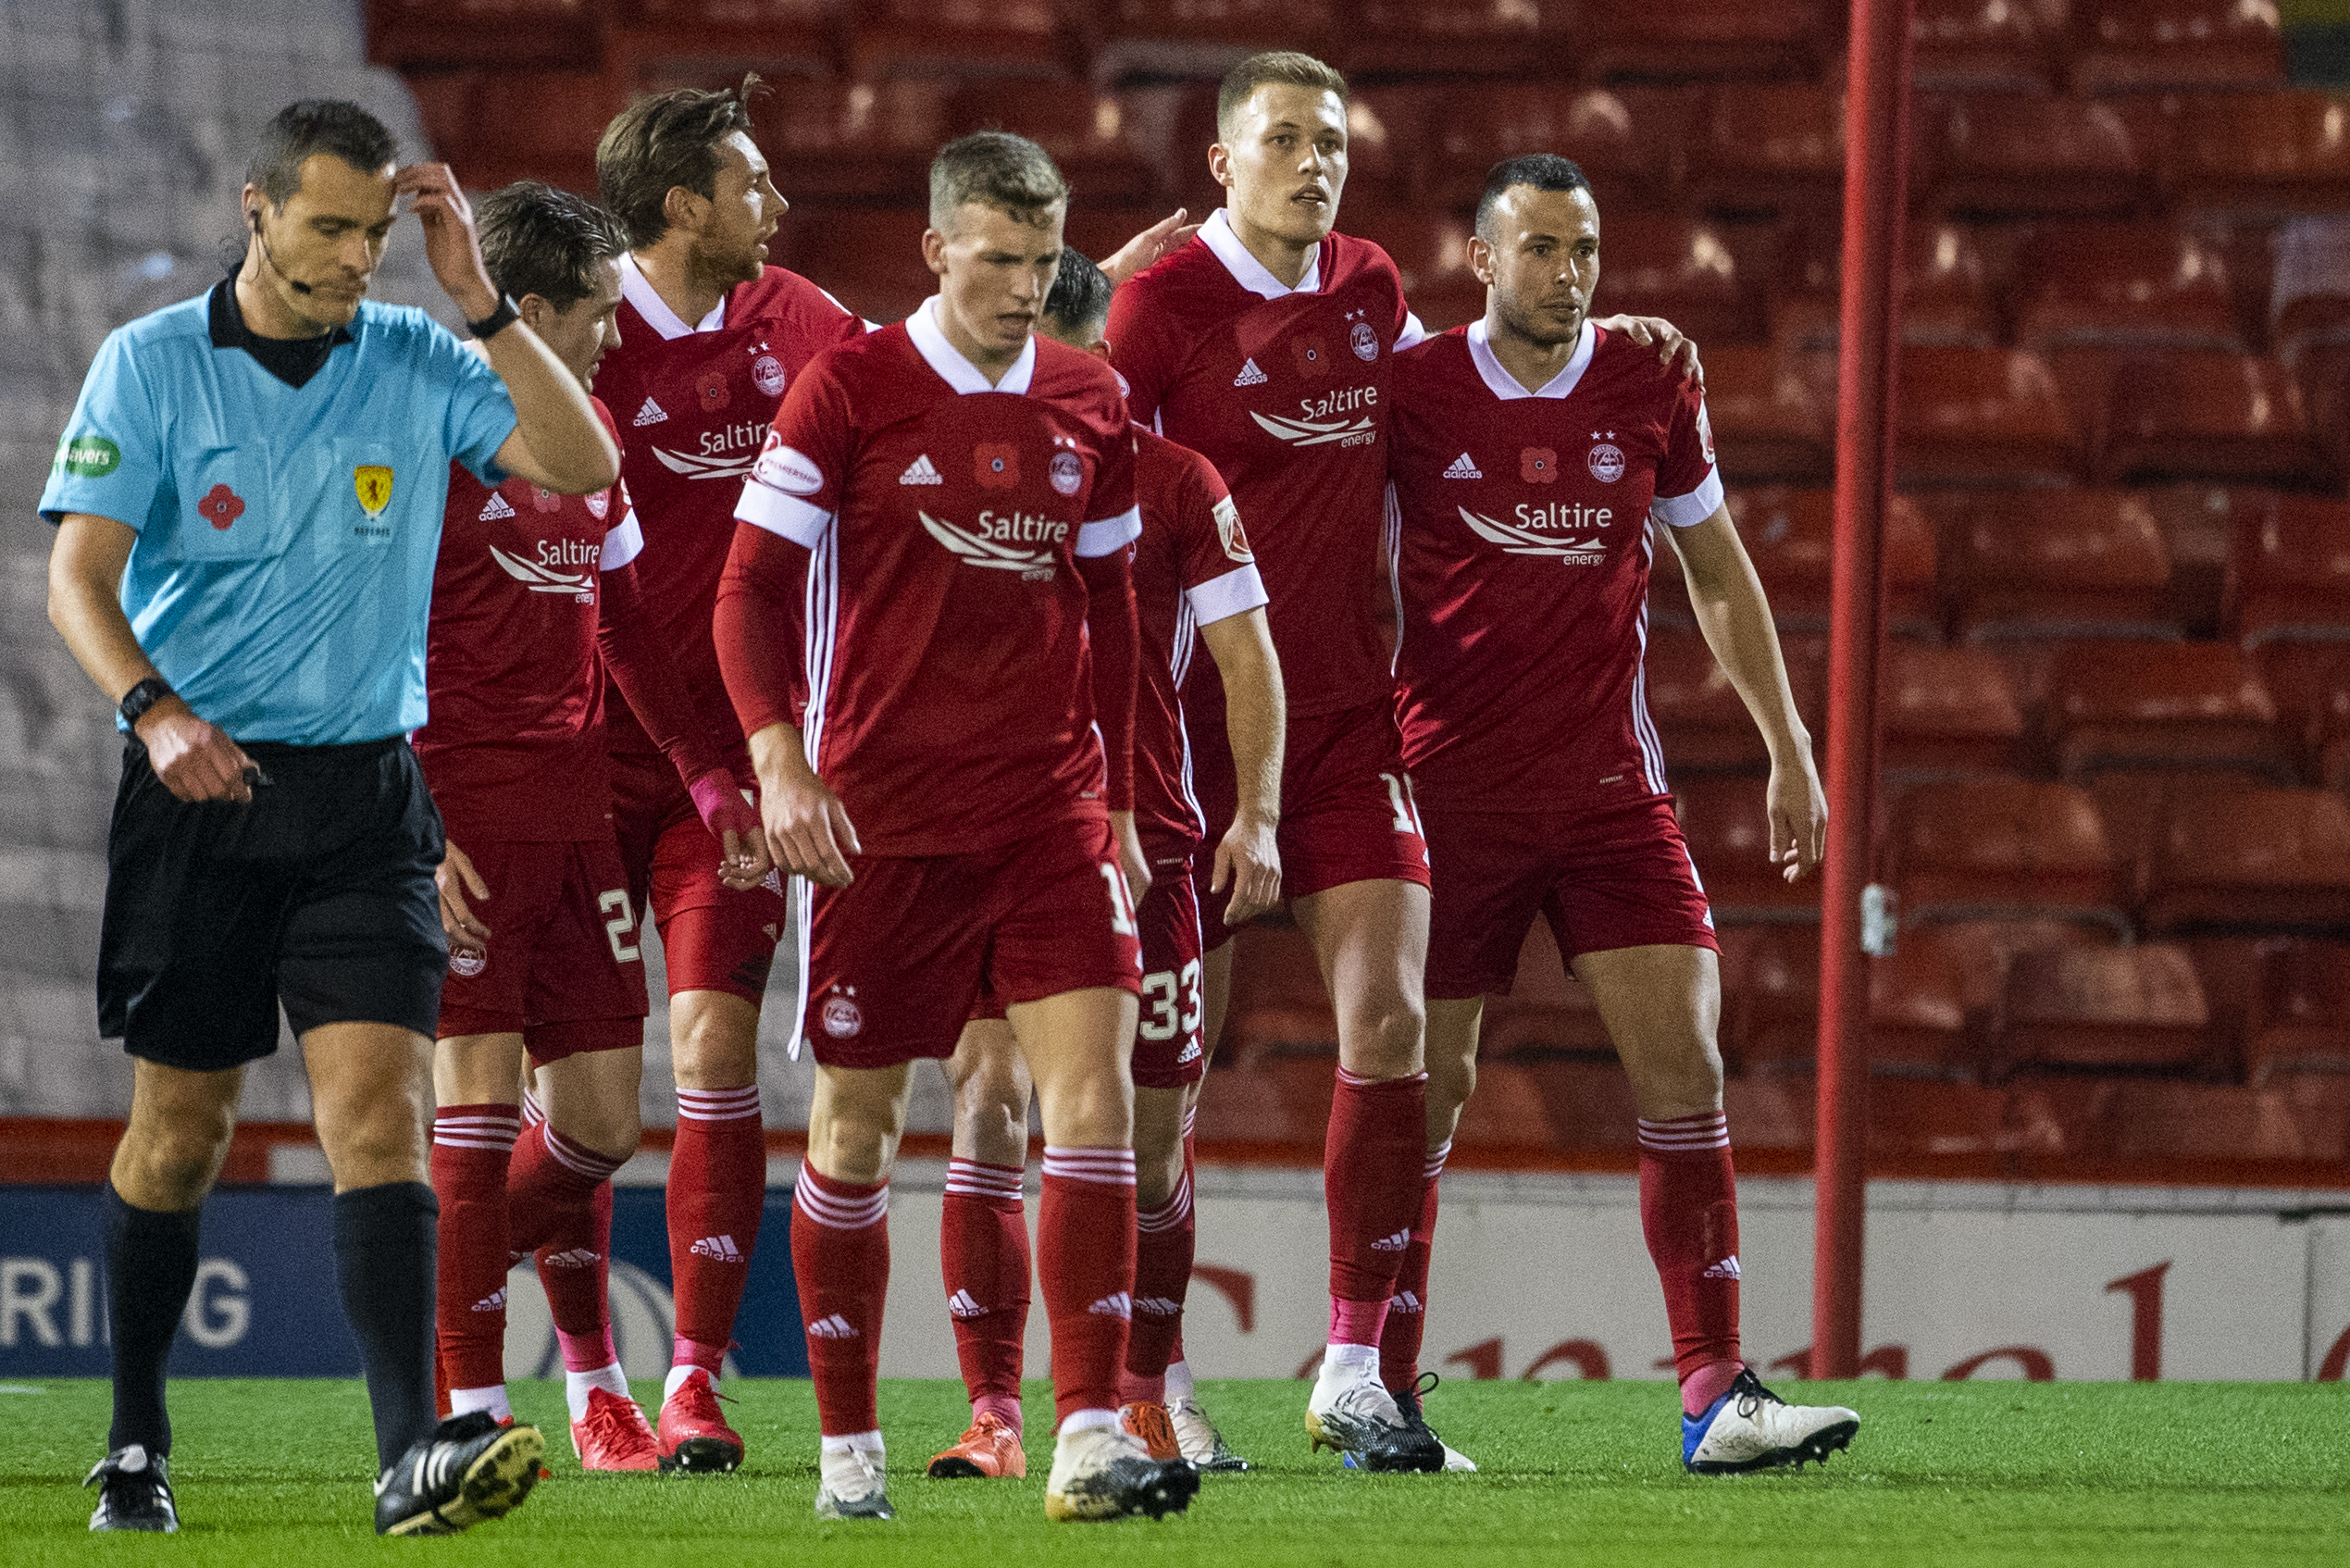 Aberdeen players in action against Hibernian